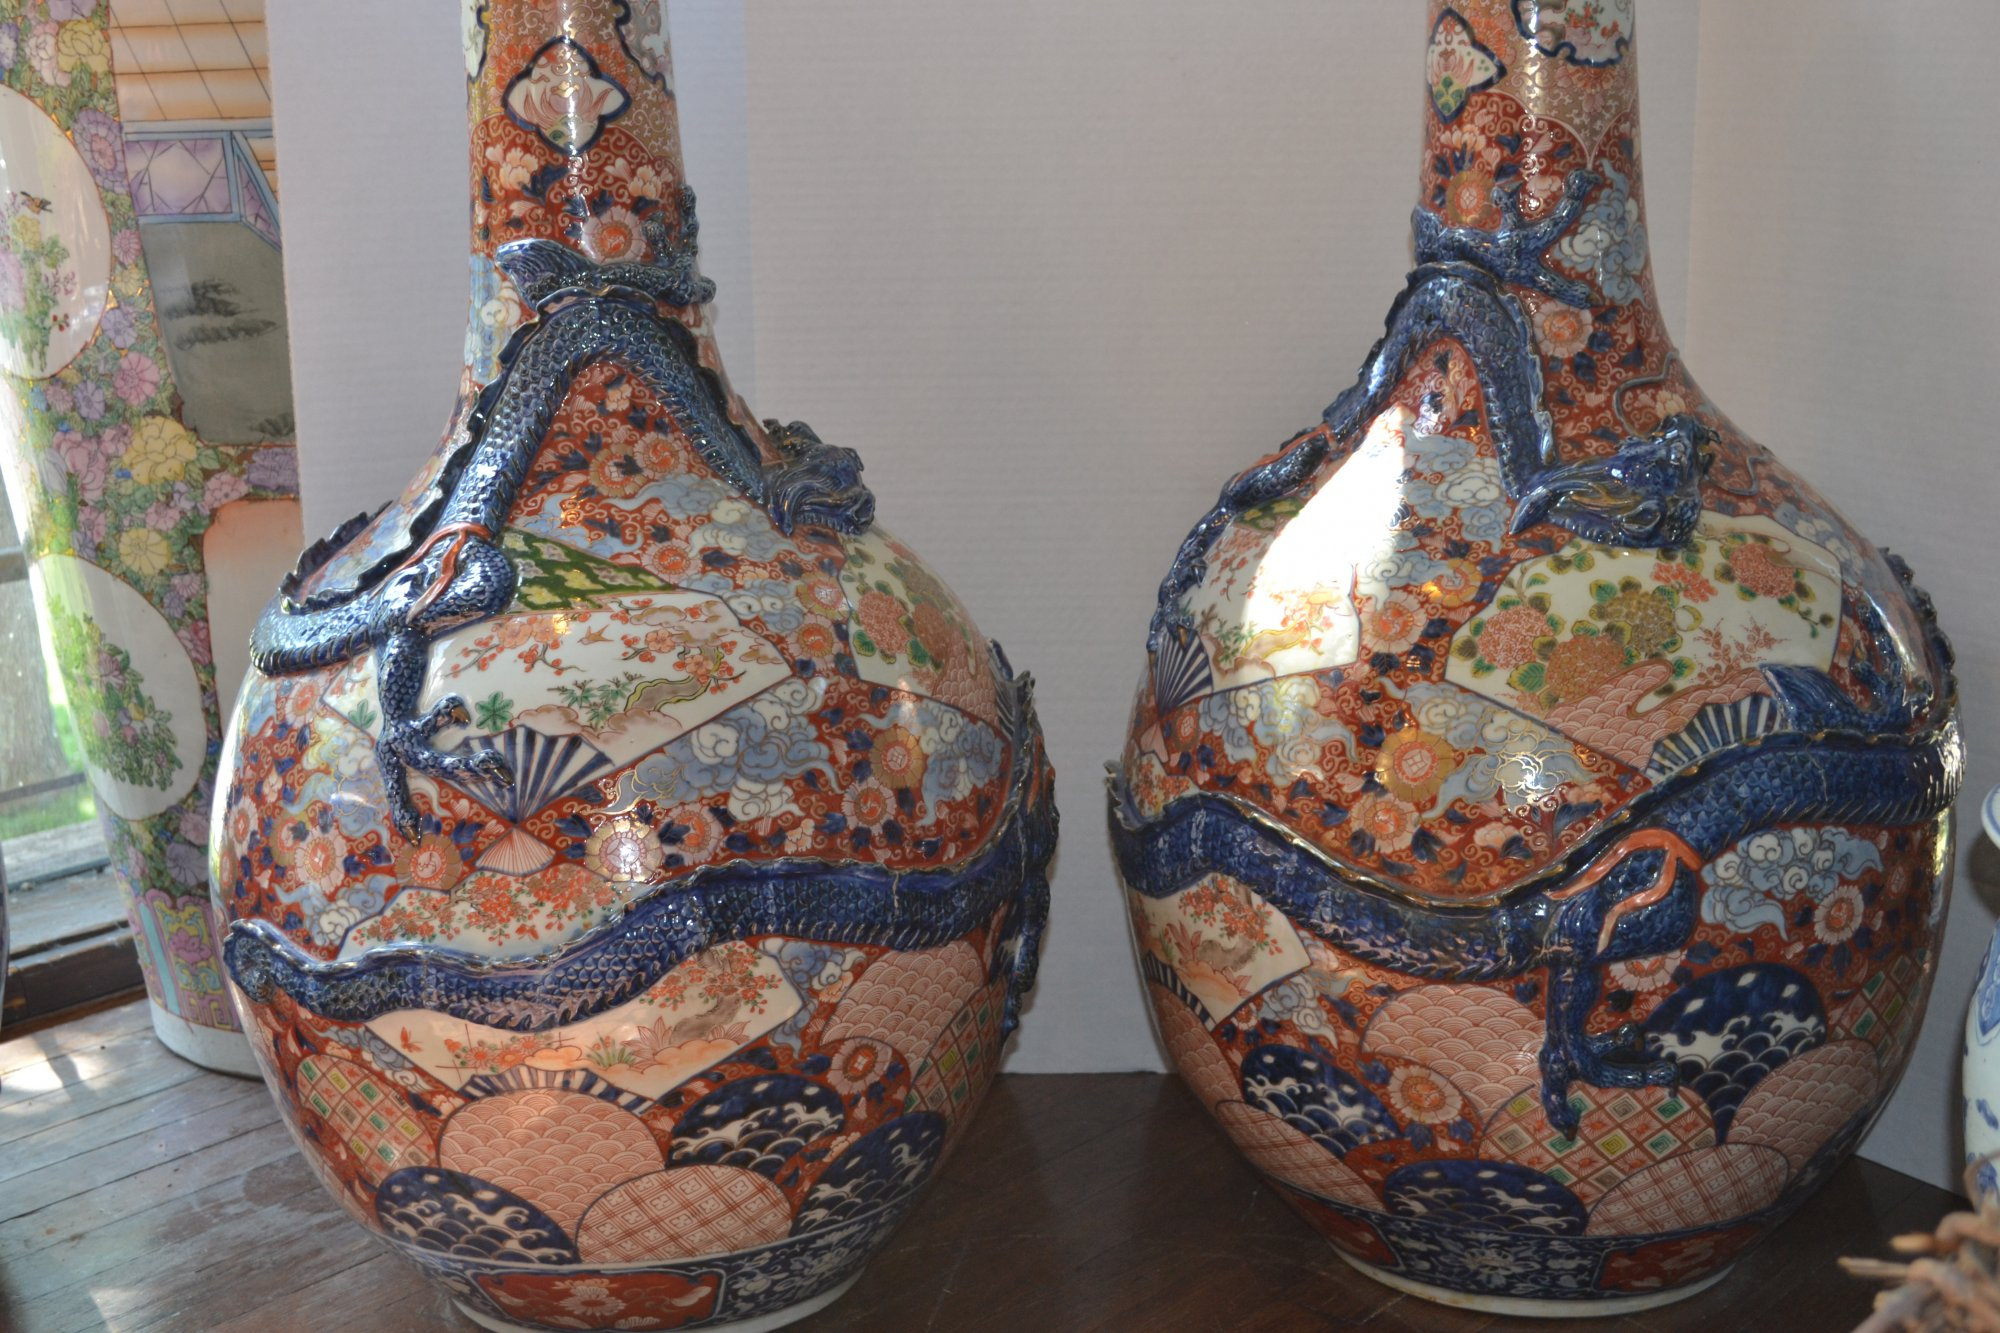 19th Century Pair of Large Japanese Imari Vases w/ blue dragon relief designs H. 36 X W. 18